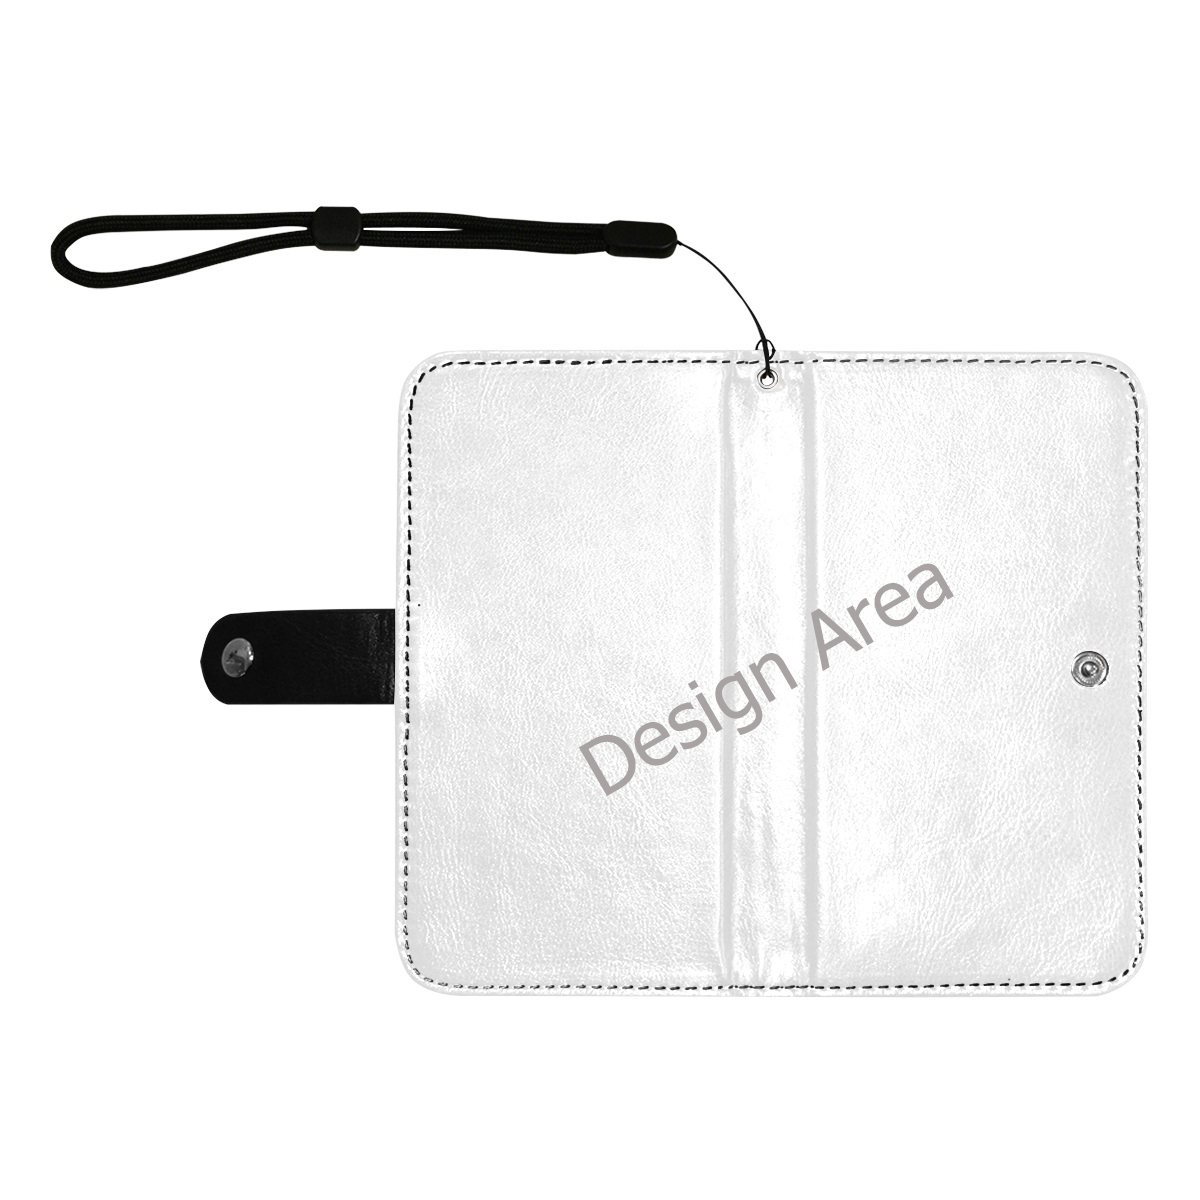 Flip Leather Purse for Mobile Phone/Large (Model 1703)